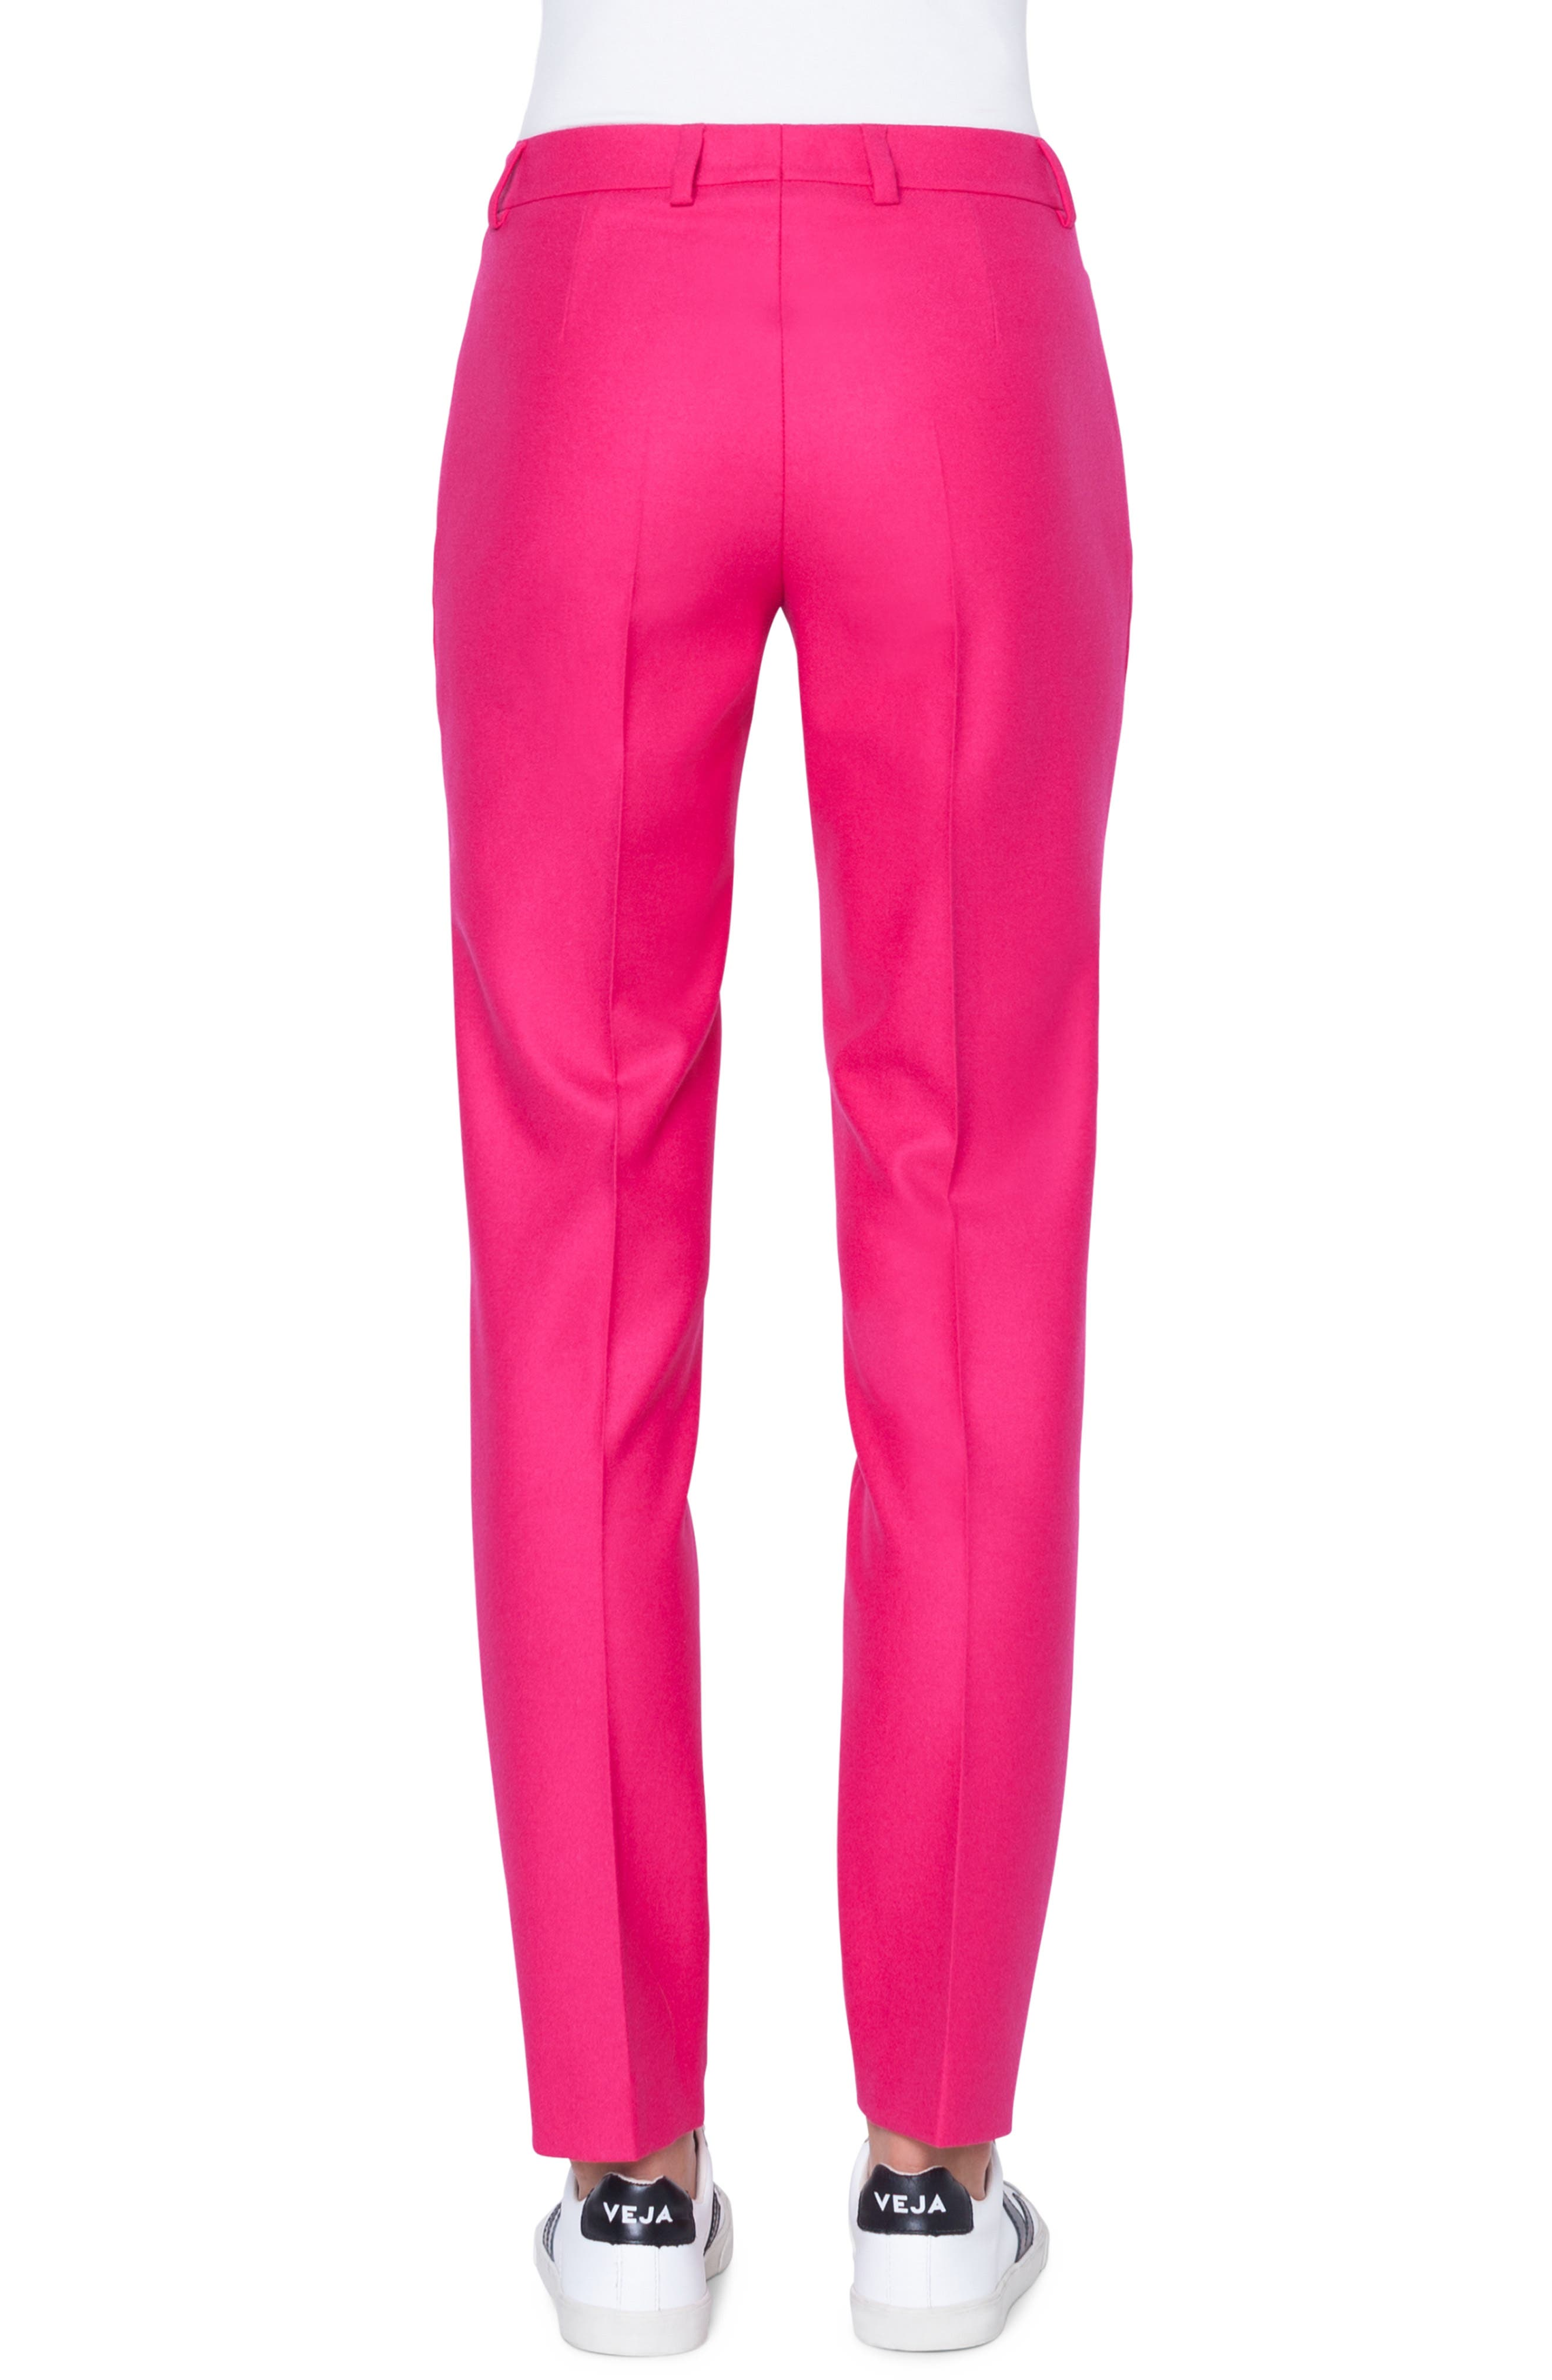 Melvin Stretch Wool Flannel Pants,                             Alternate thumbnail 2, color,                             067 PINK